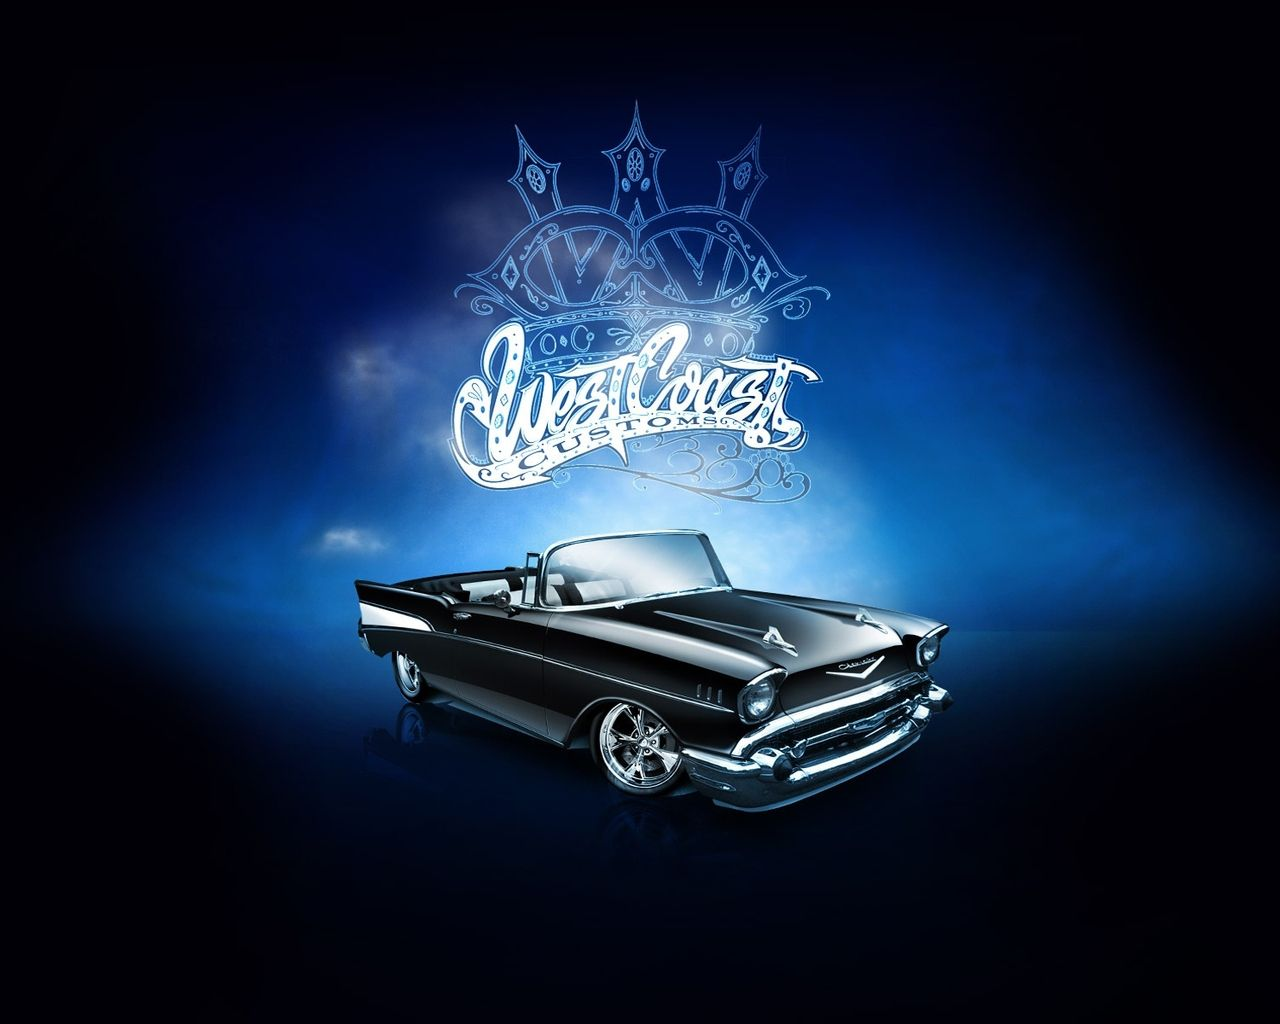 West Coast Customs Wcc West Coast Kastoms Wallpaper Photo and